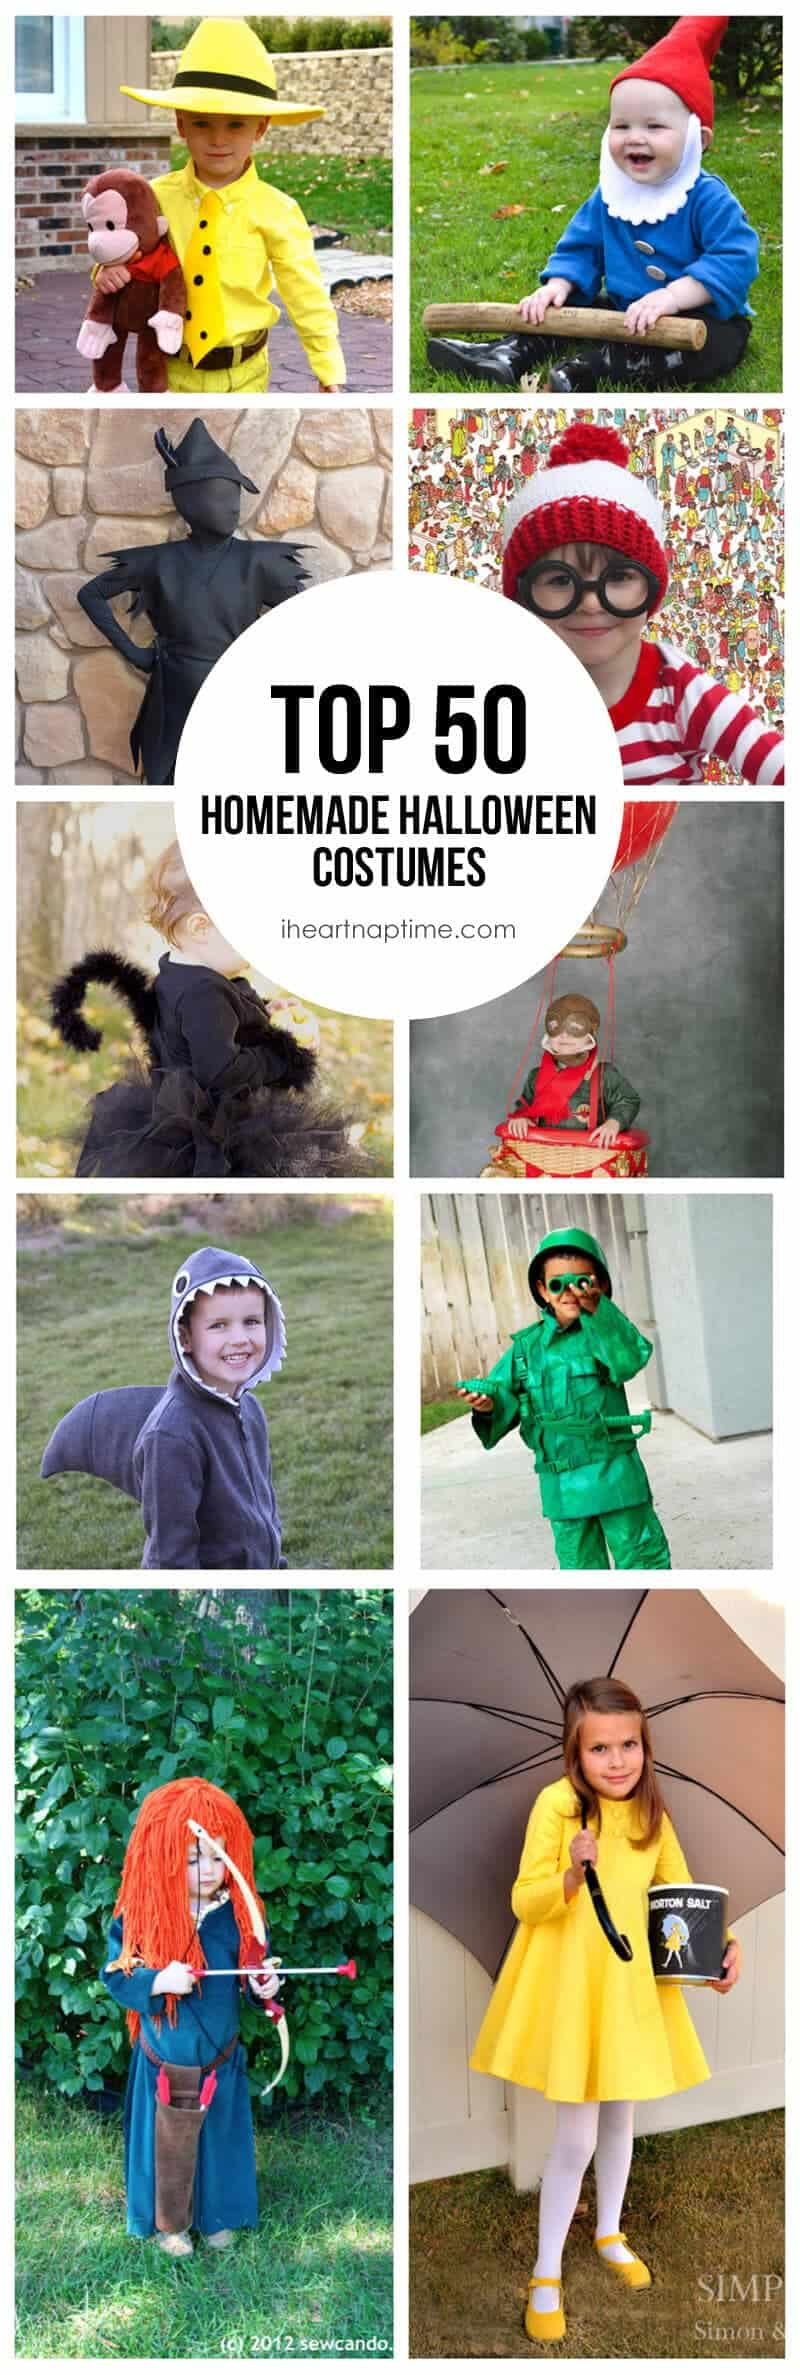 Top 50 Homemade Costumes